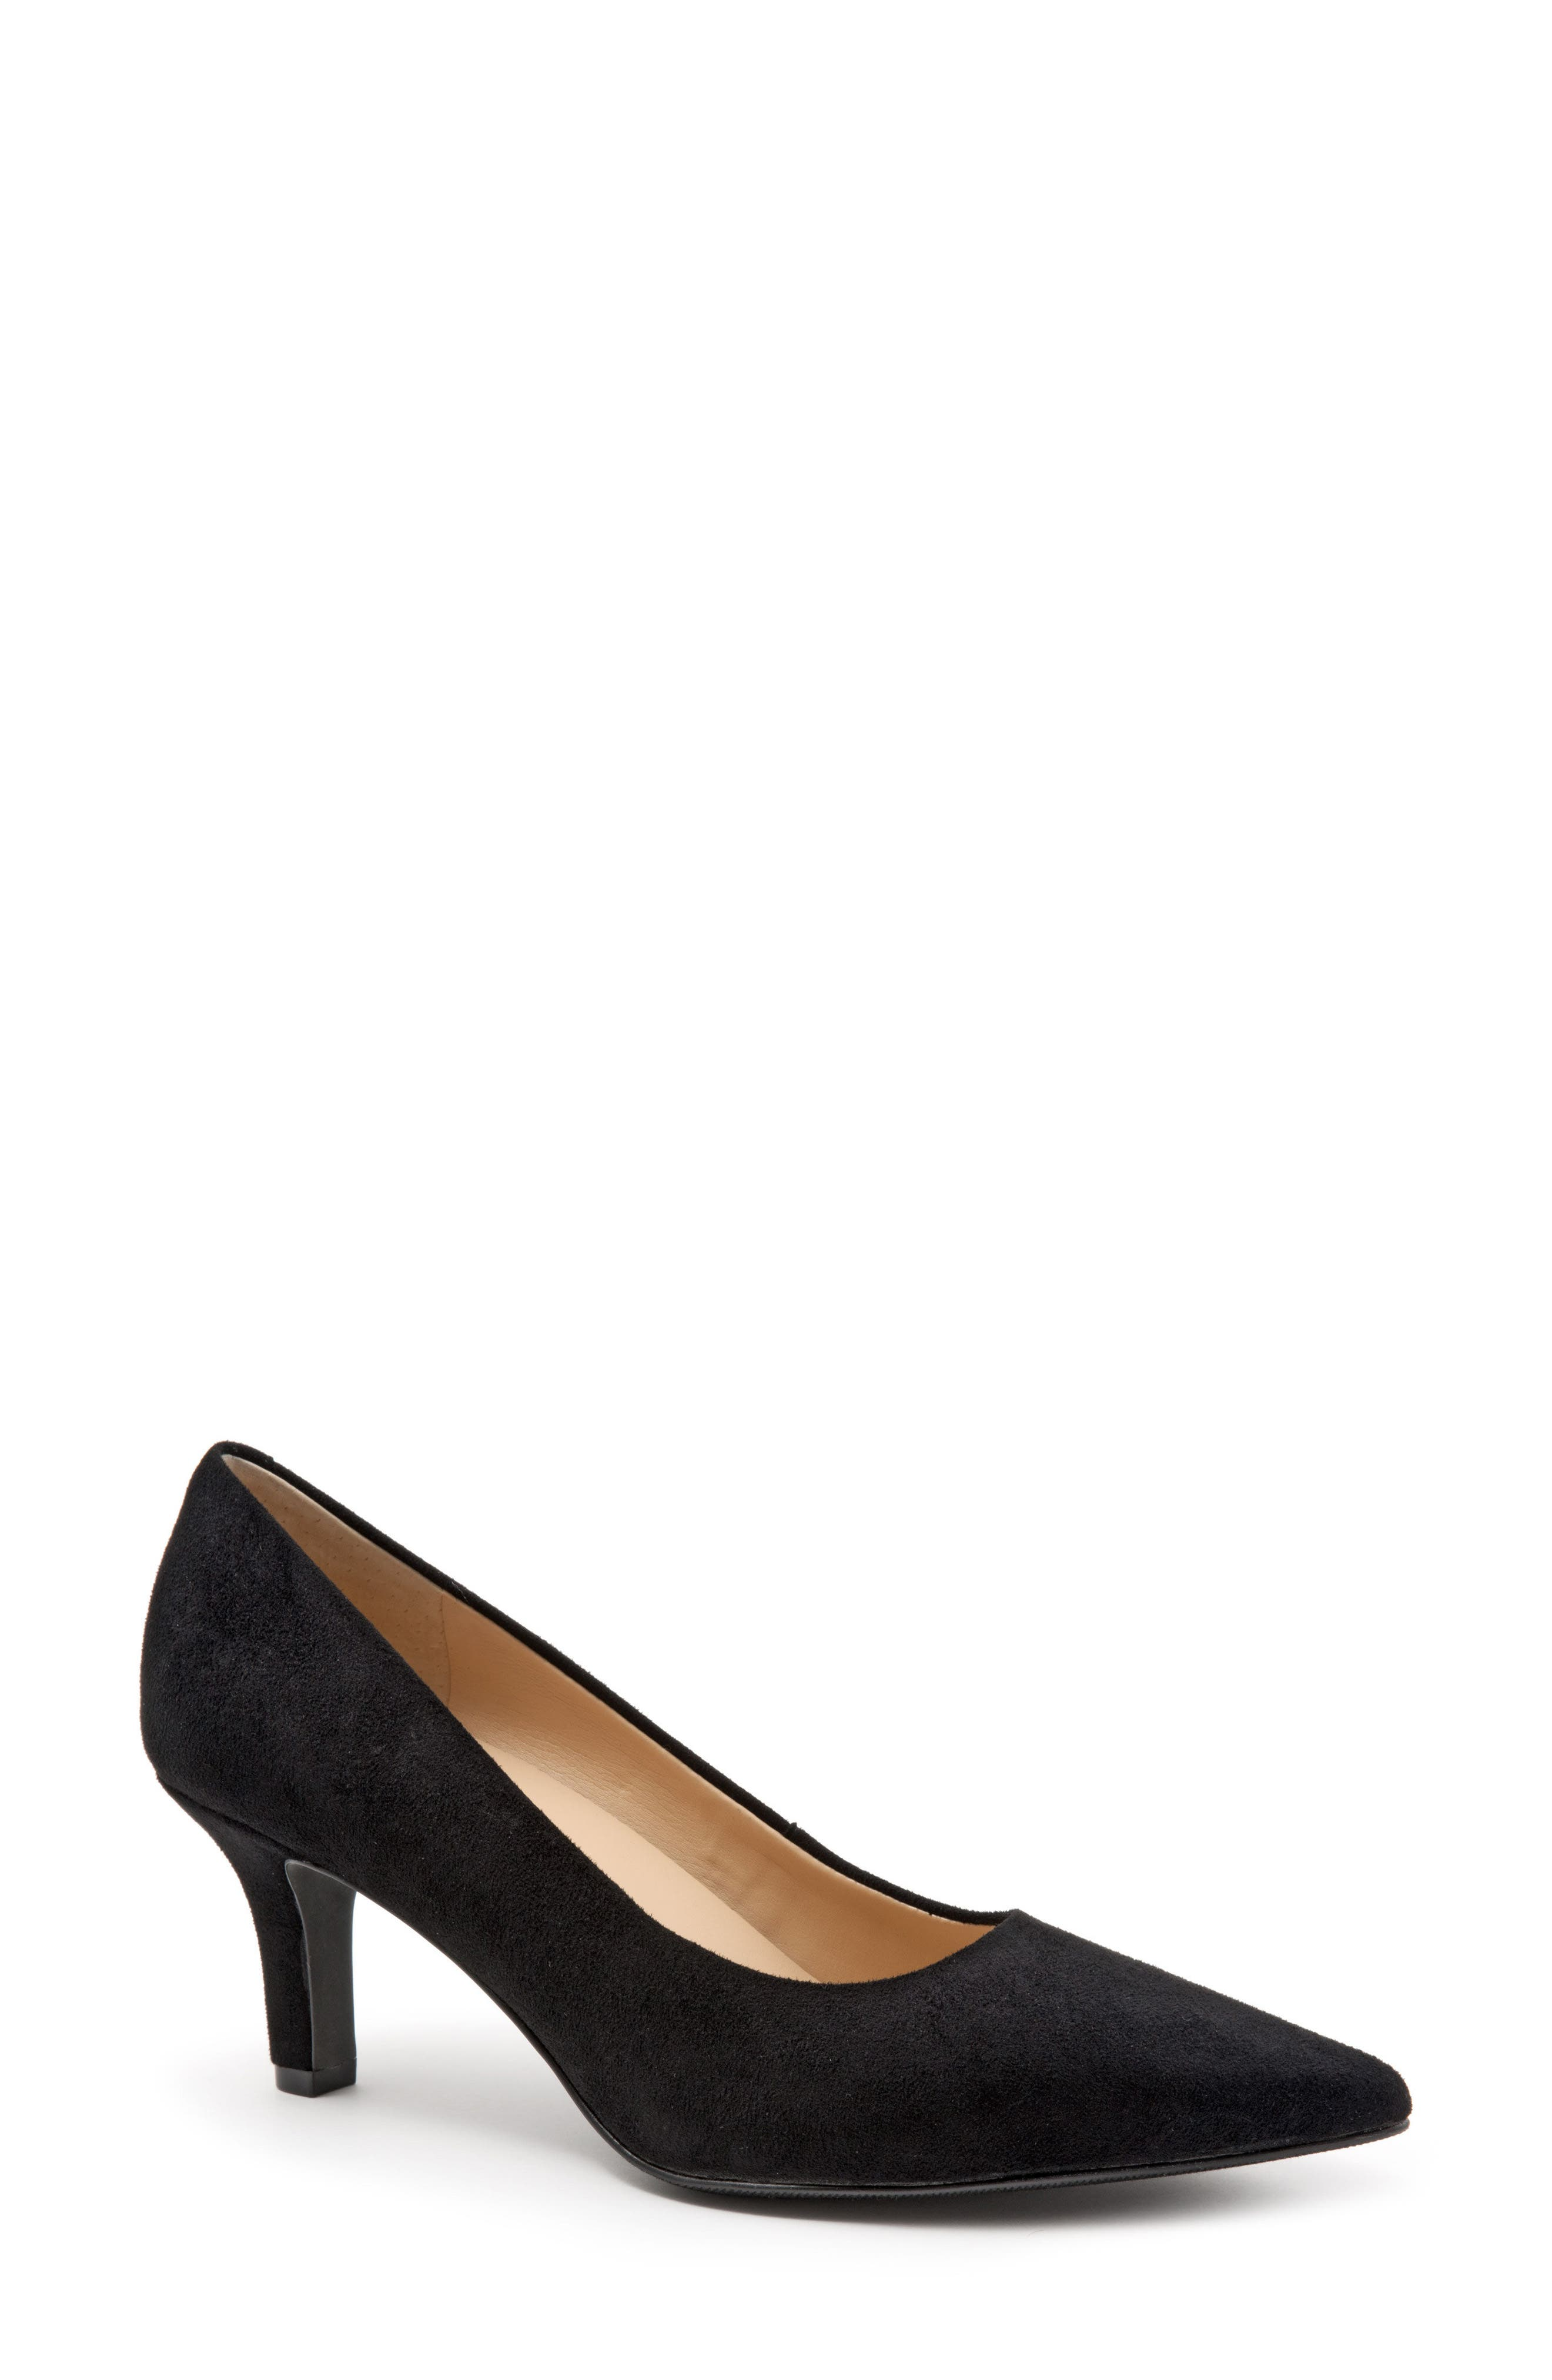 Noelle Pointy Toe Pump,                         Main,                         color, BLACK FABRIC